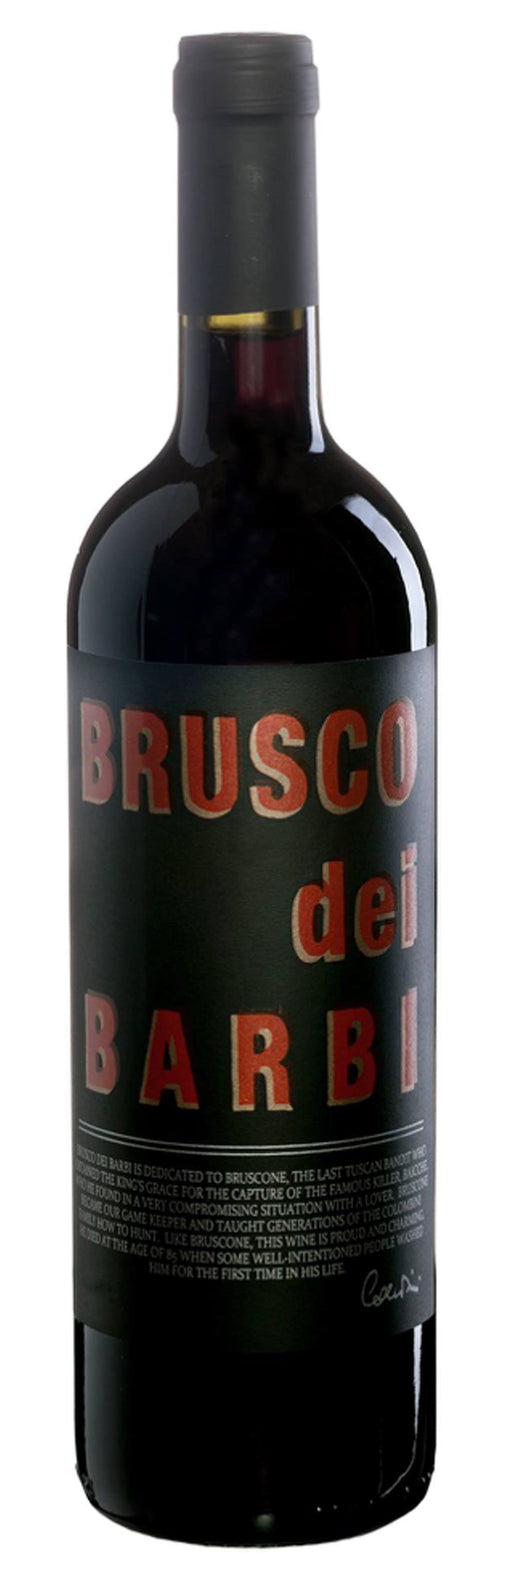 Barbi Brusco dei Barbi 2017